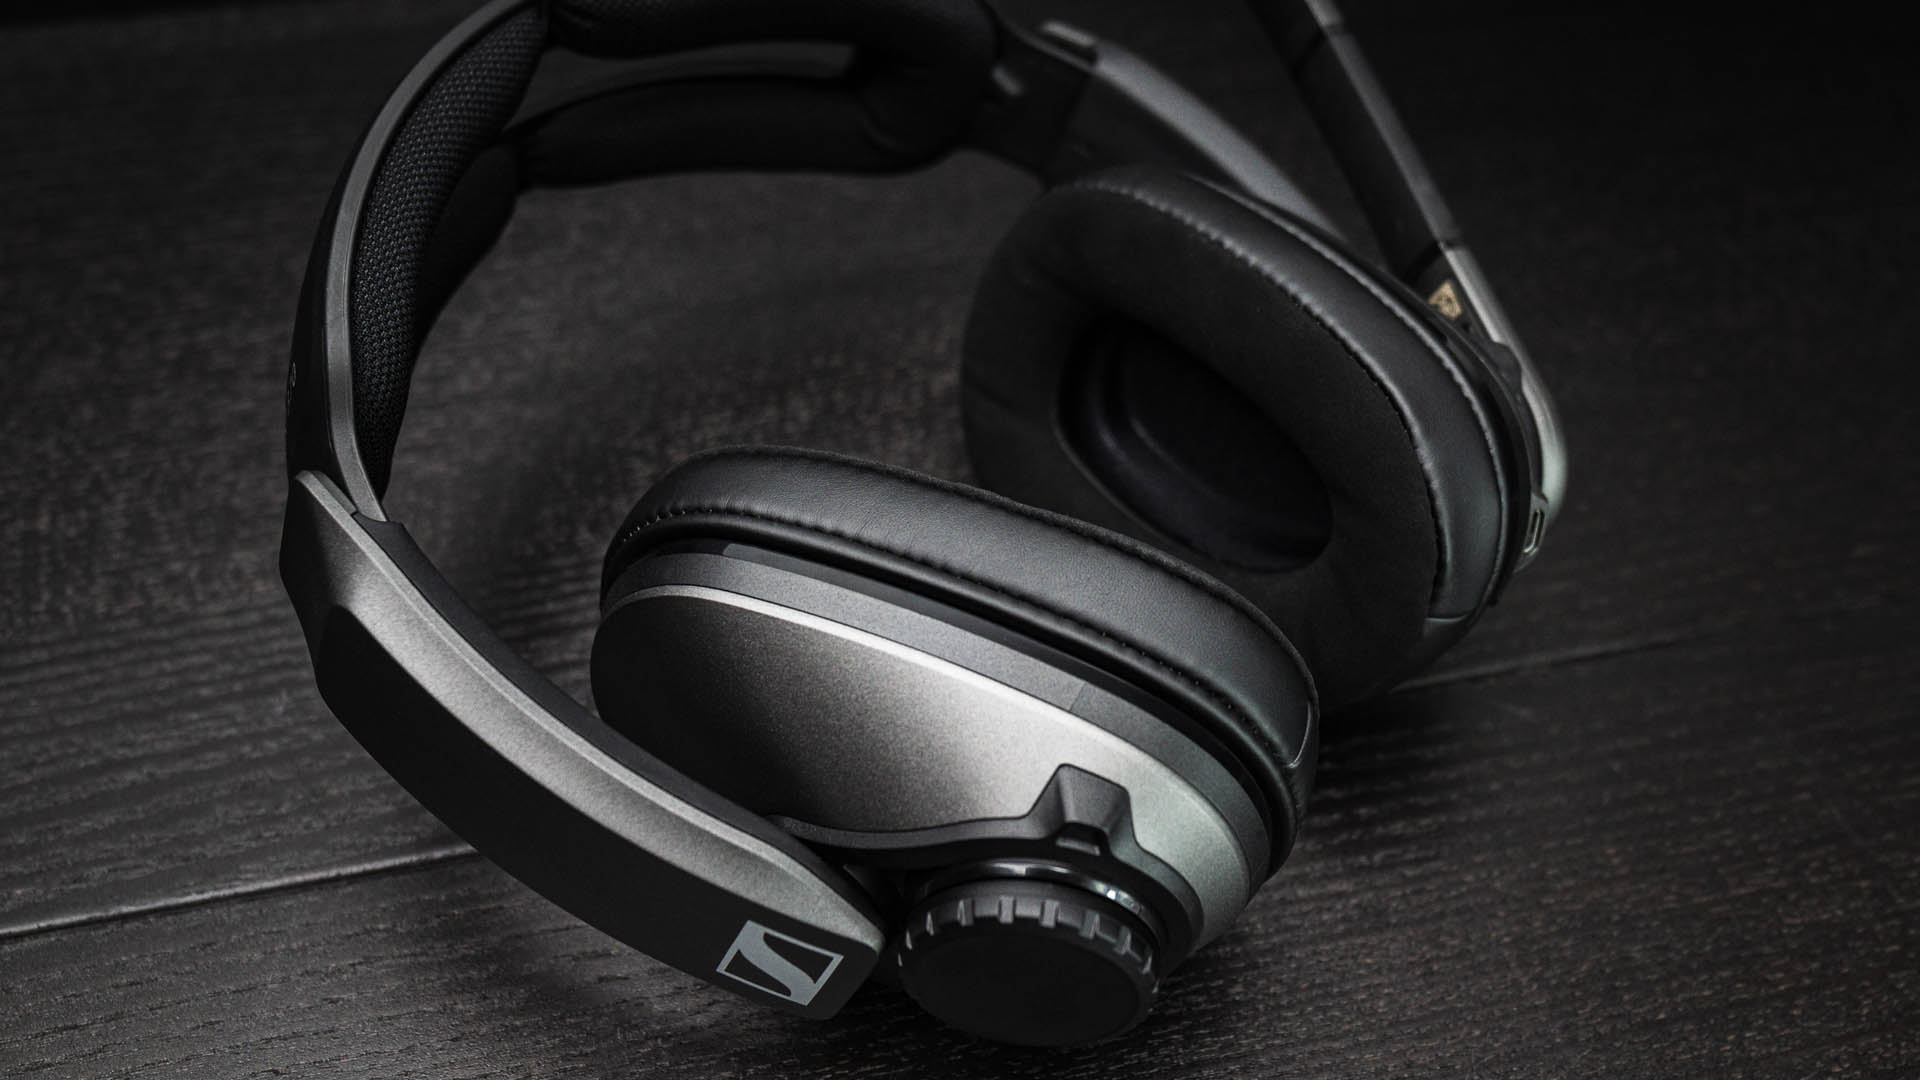 Sennheiser GSP 370 wireless gaming headset review: 100-hour battery life